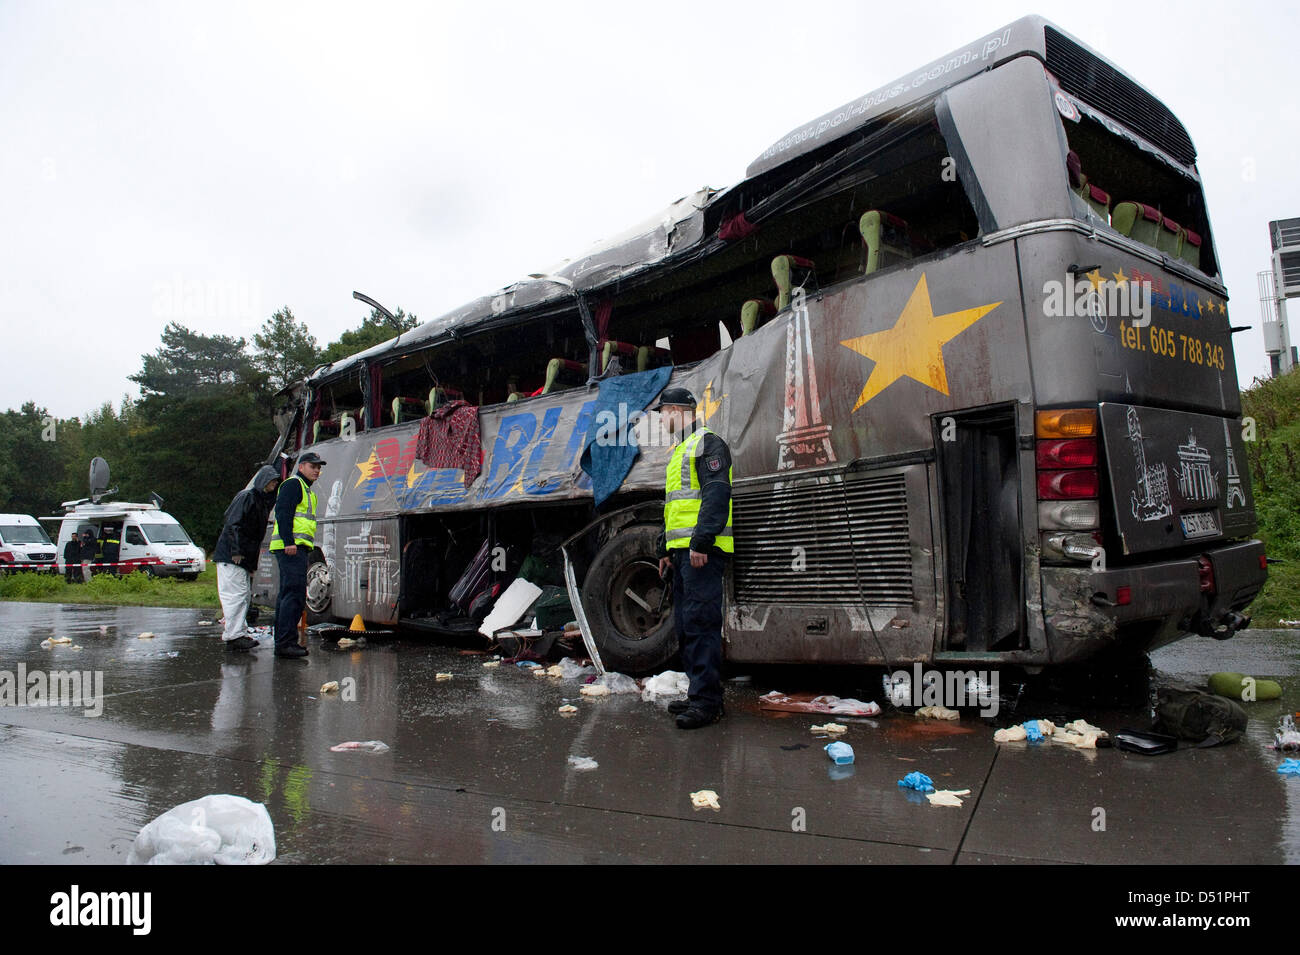 Bus Accident Stock Photos & Bus Accident Stock Images - Alamy